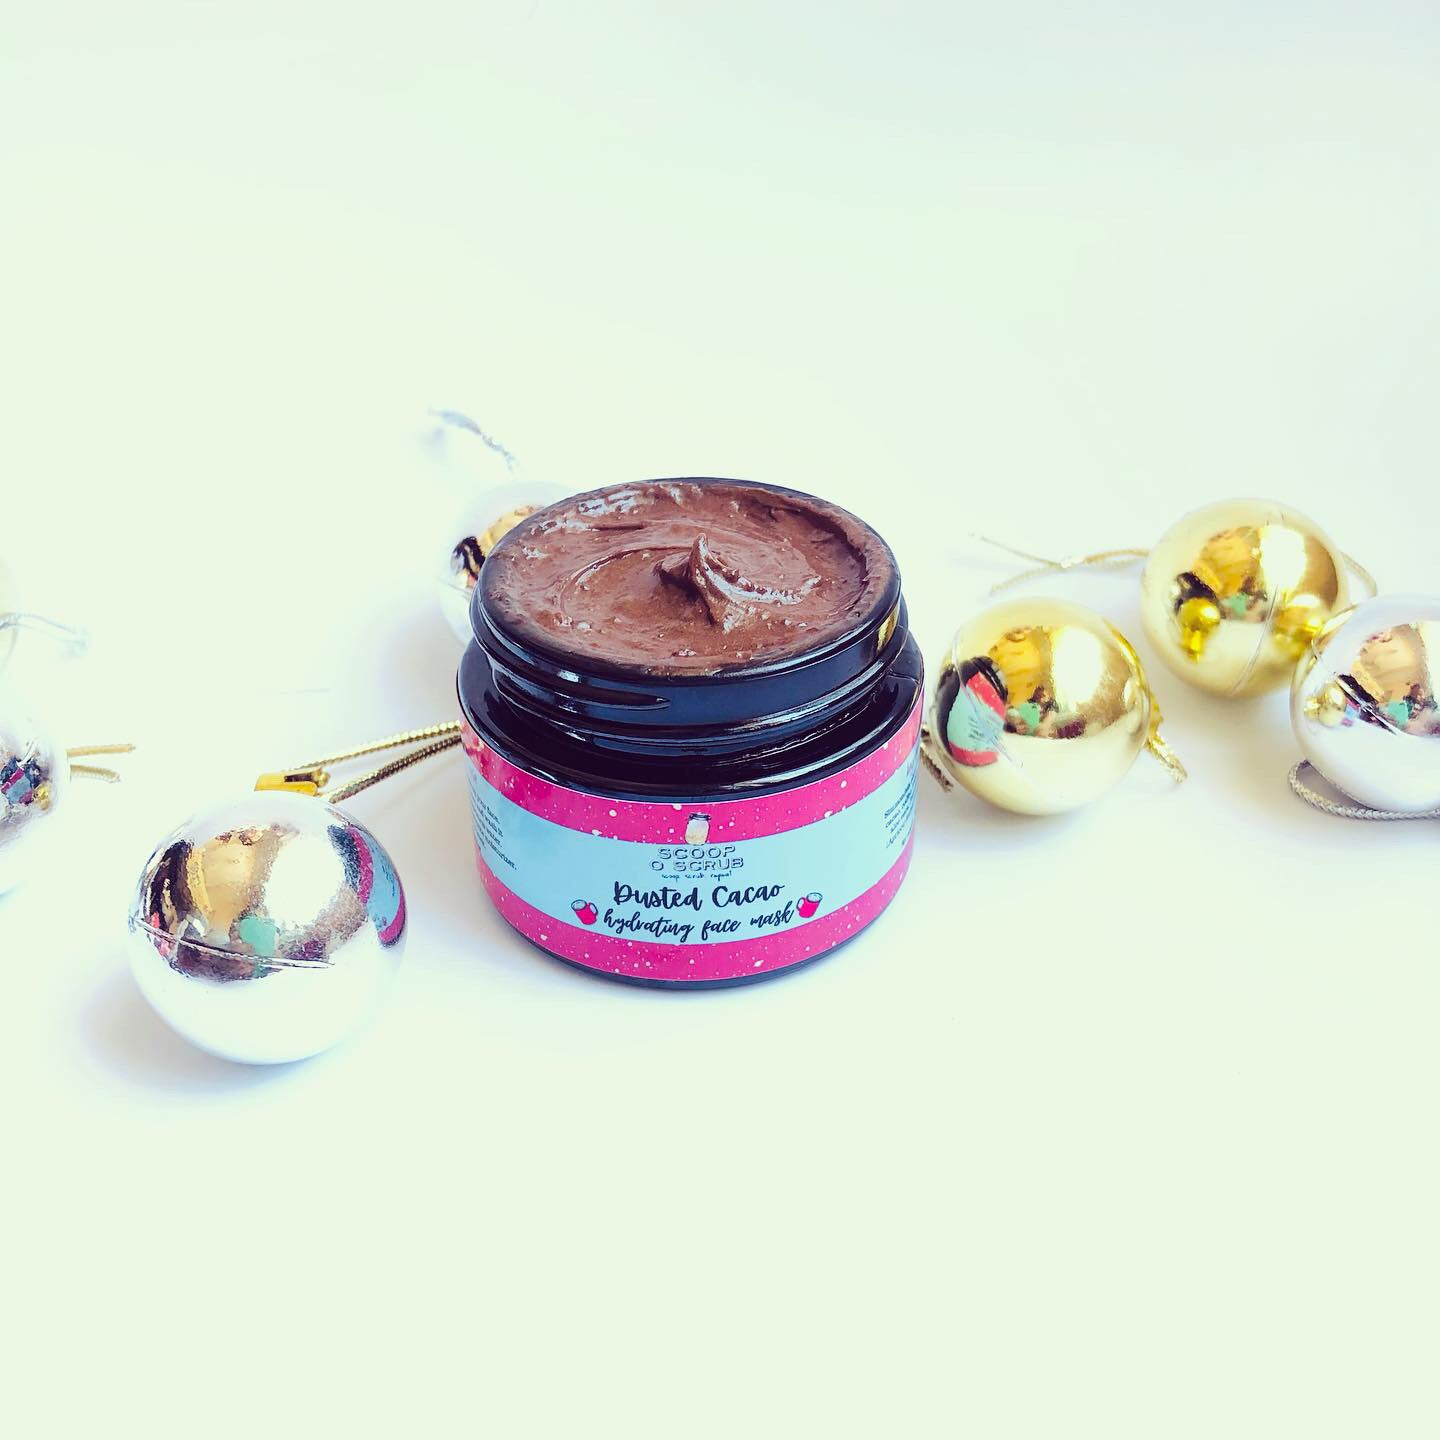 Dusted Cacao - Hydrating Face Mask